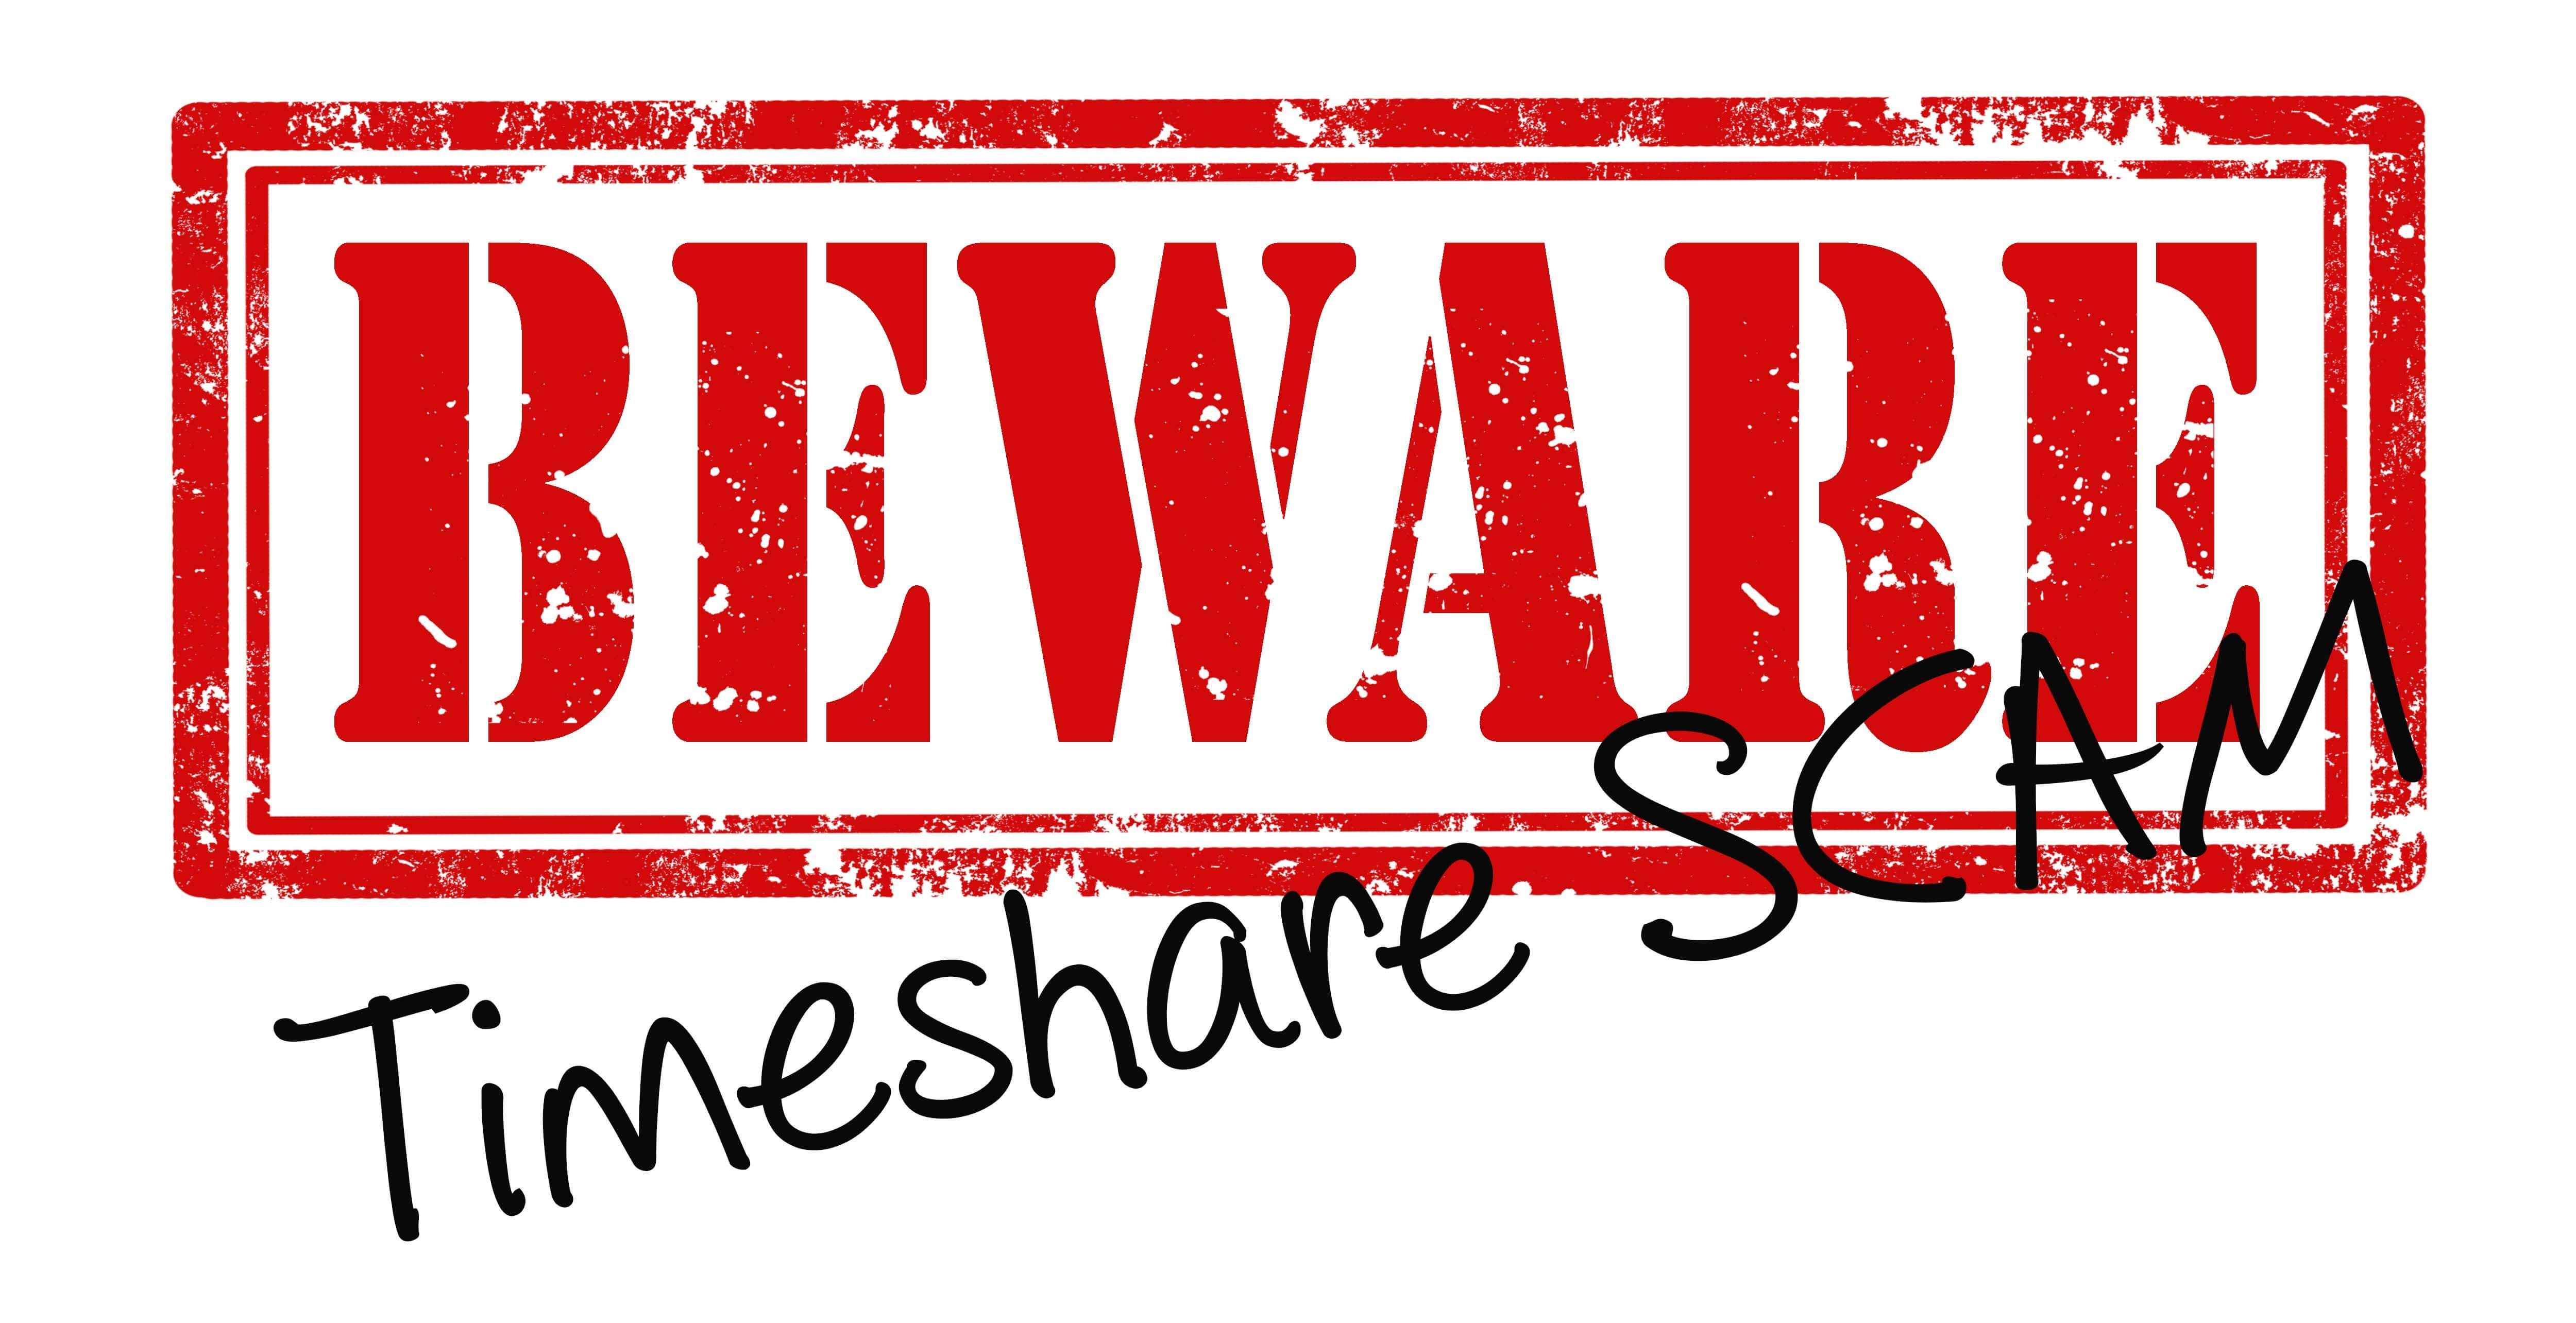 Avoid Puerto Vallarta timeshare scam